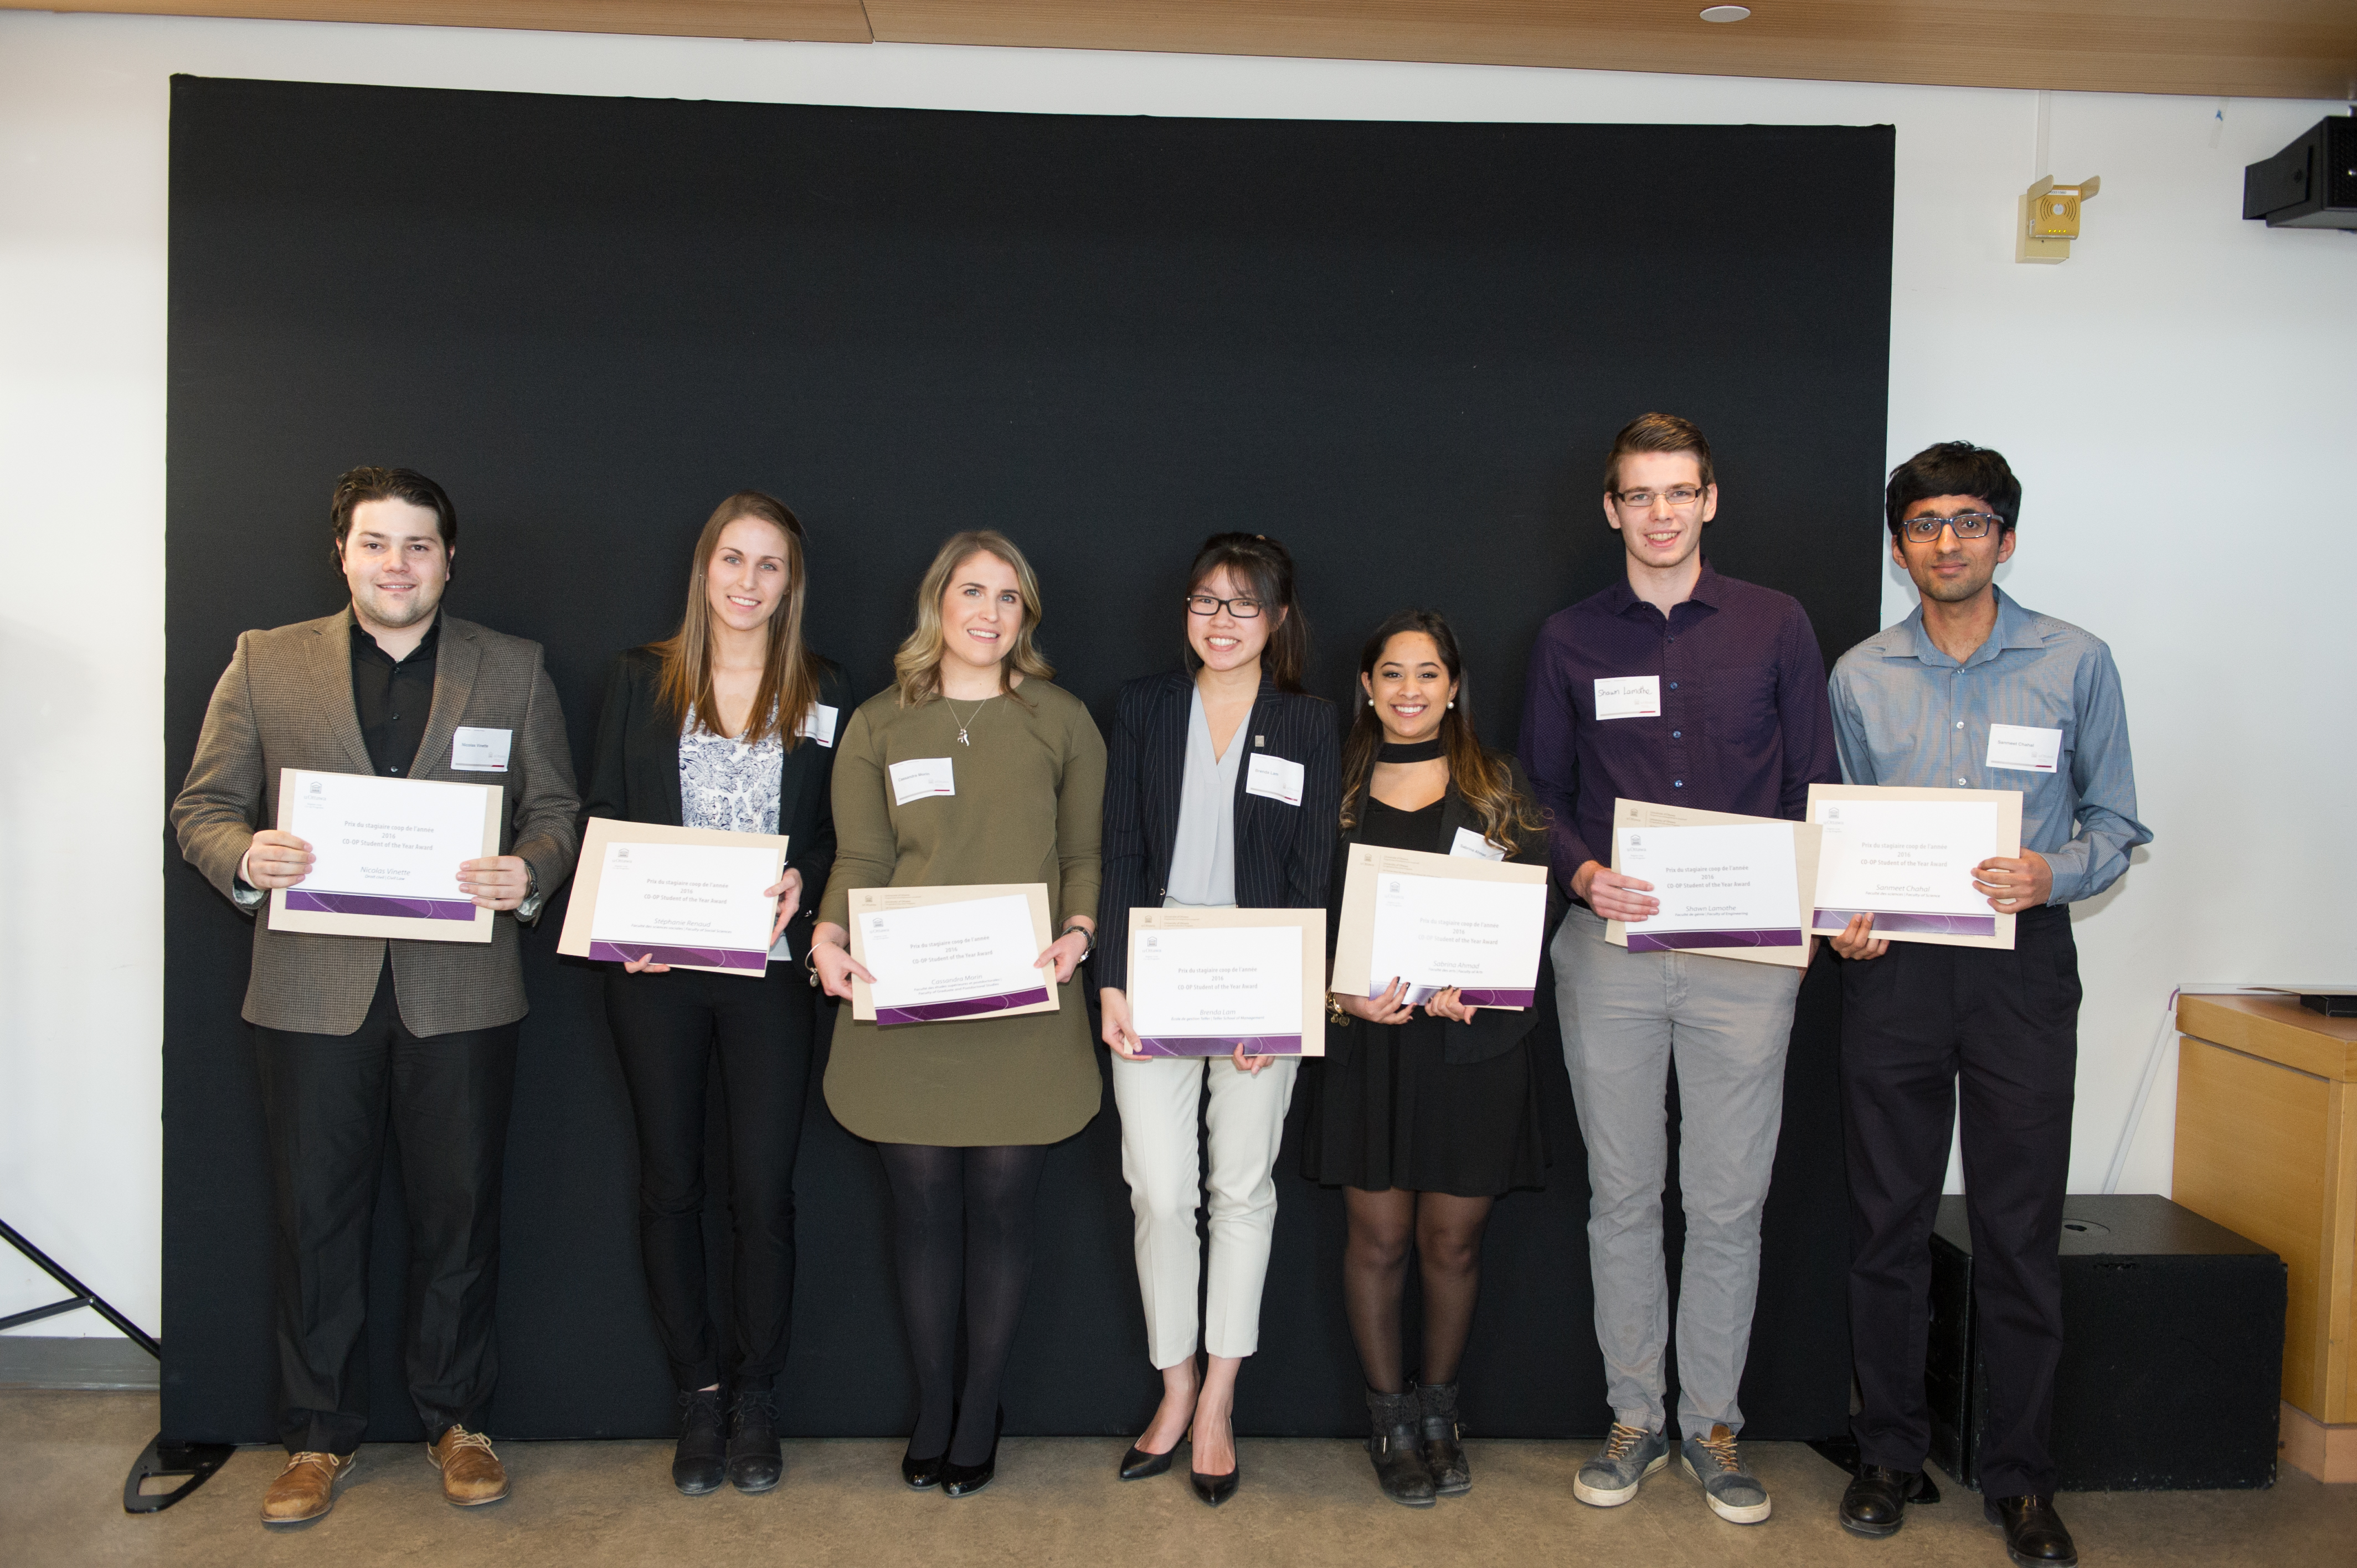 CO-OP Student of the Year Award Winners